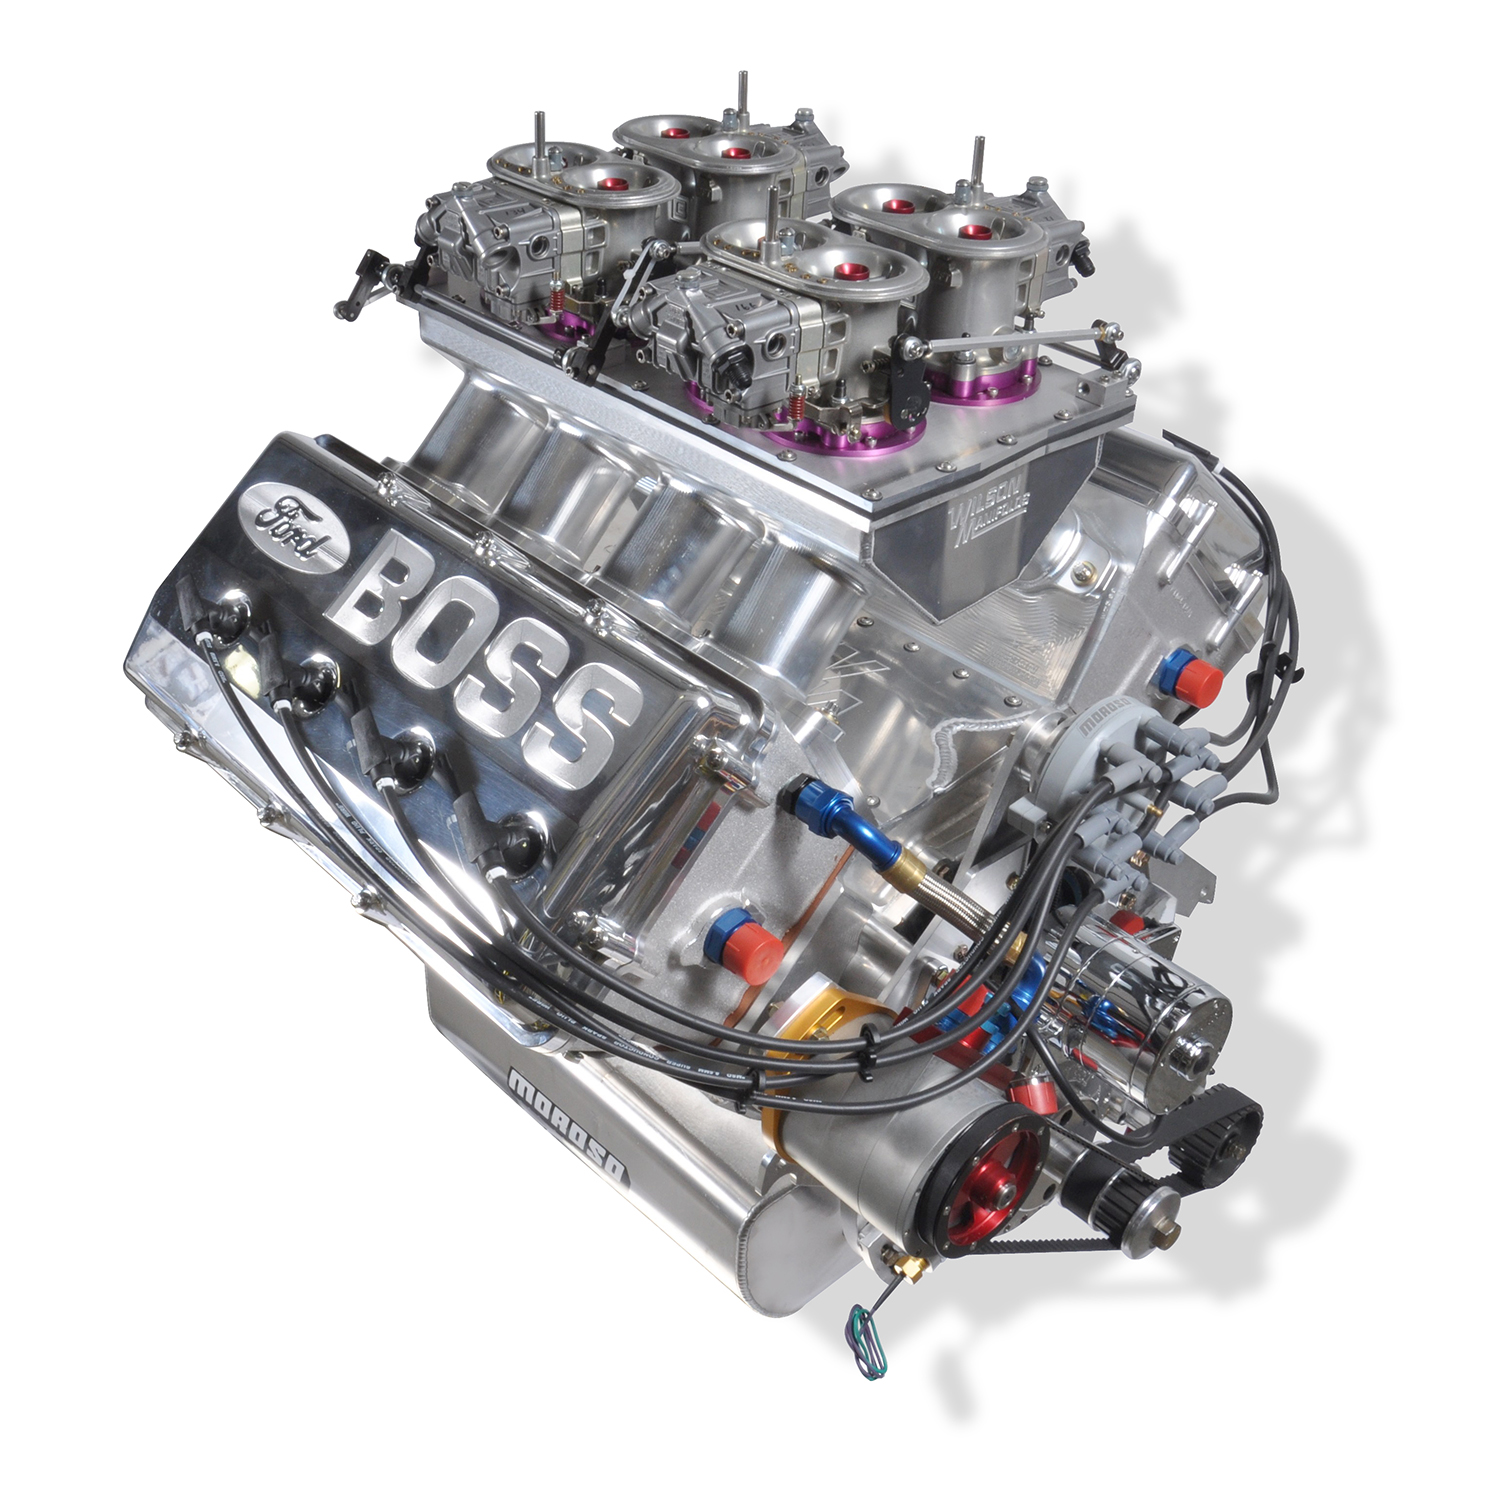 Category engines